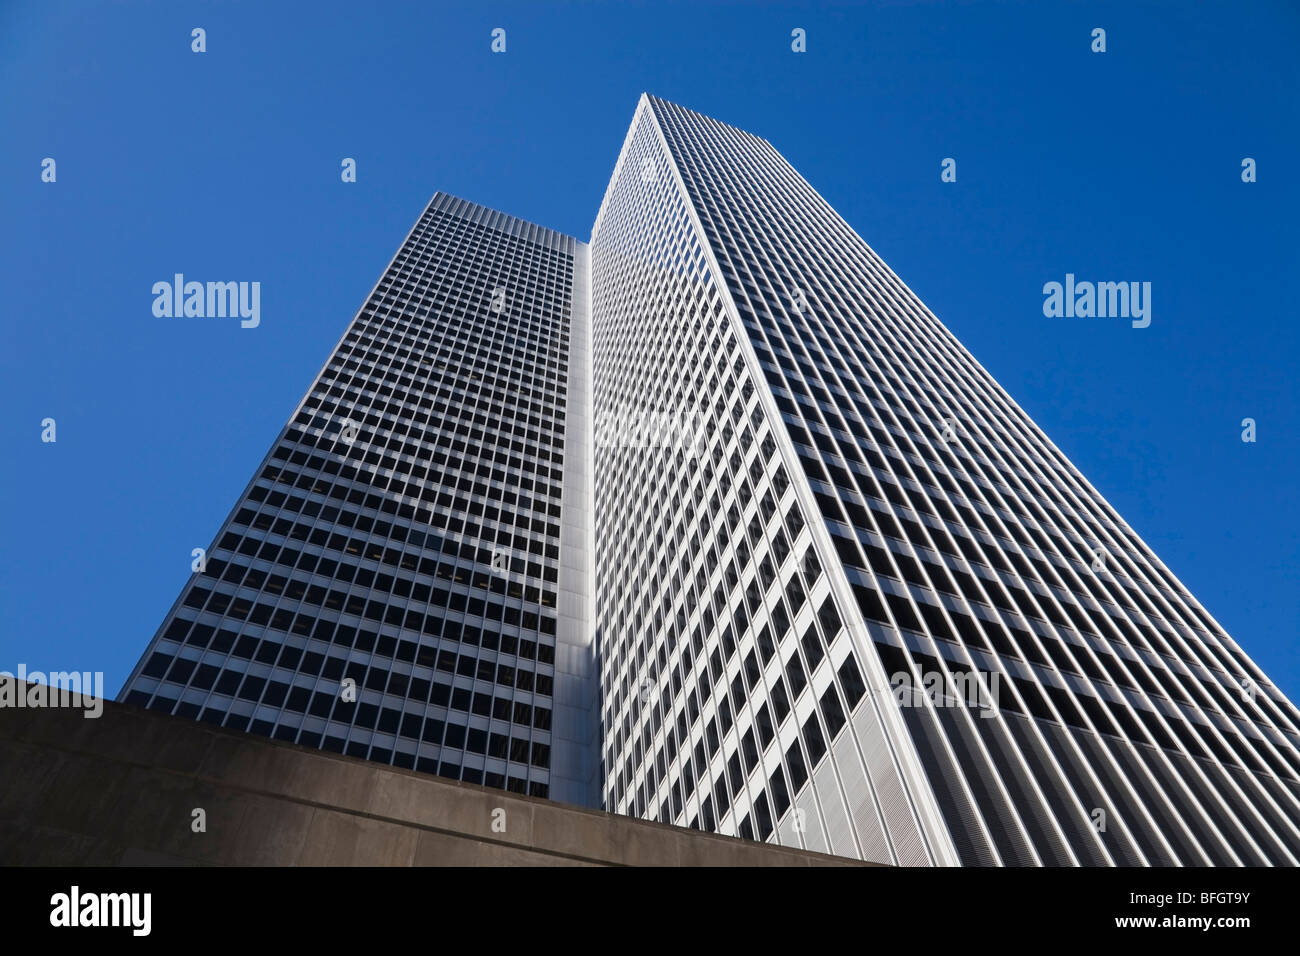 Place Ville-Marie building, Montreal, Quebec, Canada Stock Photo